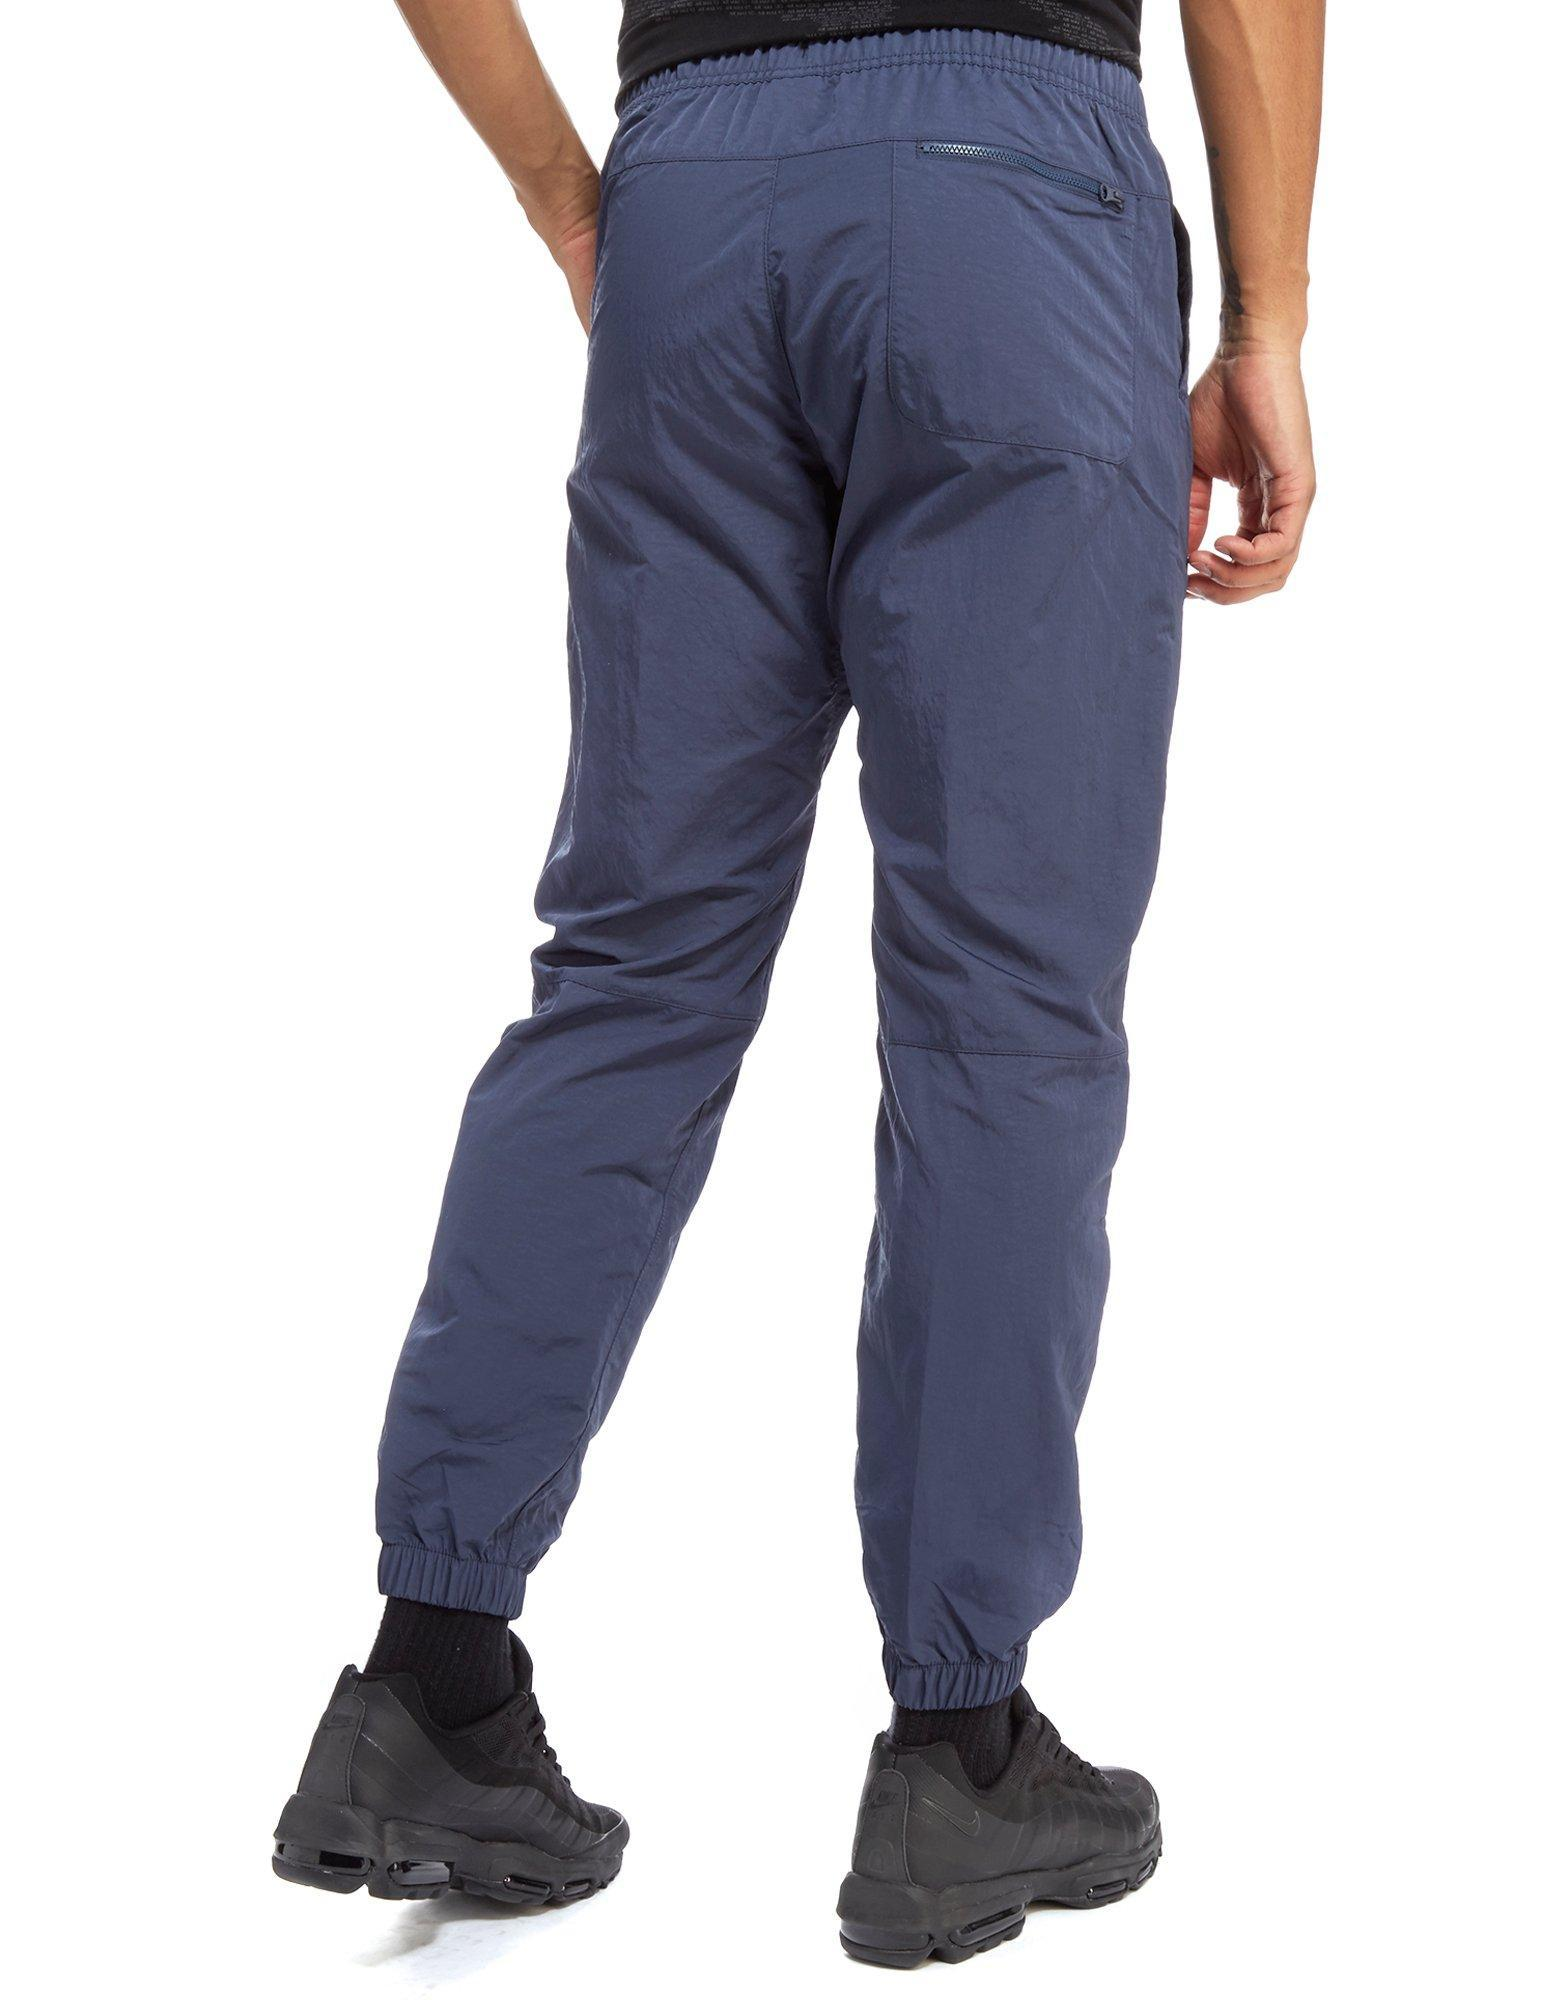 50% off new lower prices speical offer Air Woven Pants